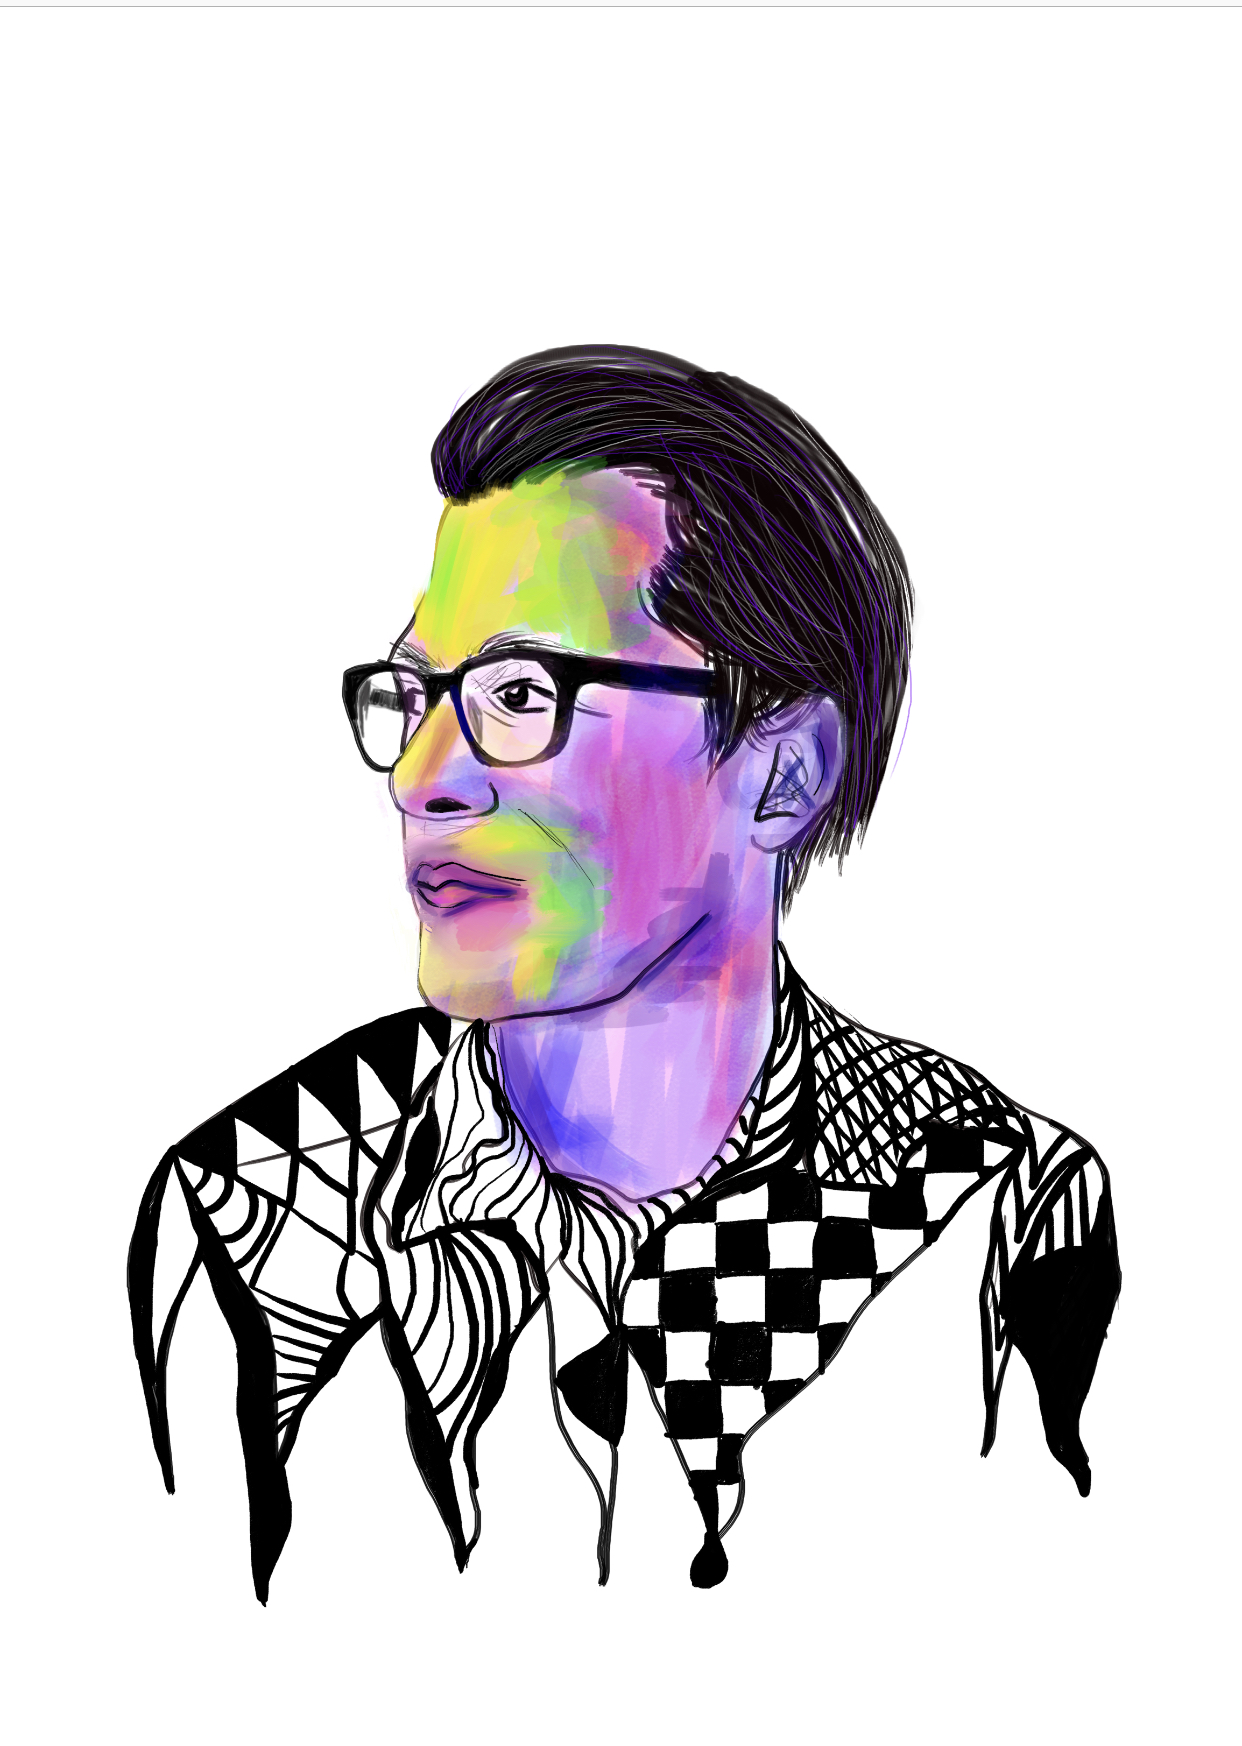 Colorful-Digital-Art-Man-Drawing-Man-Looking-to-Side